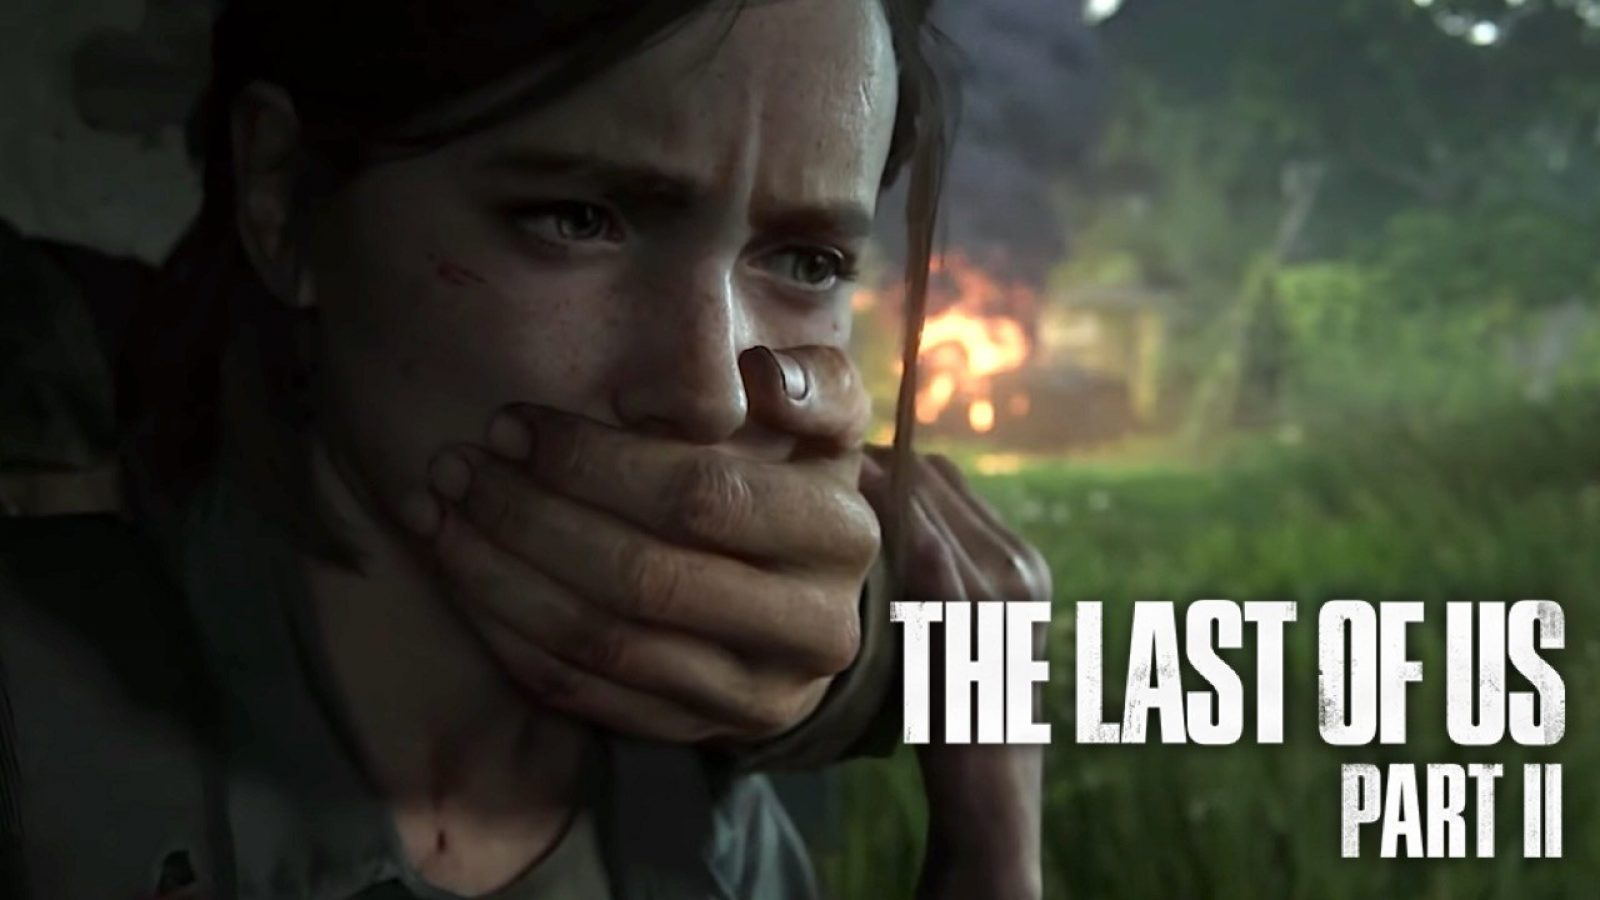 The Last of Us 2 Finally Releasing February 21, 2020